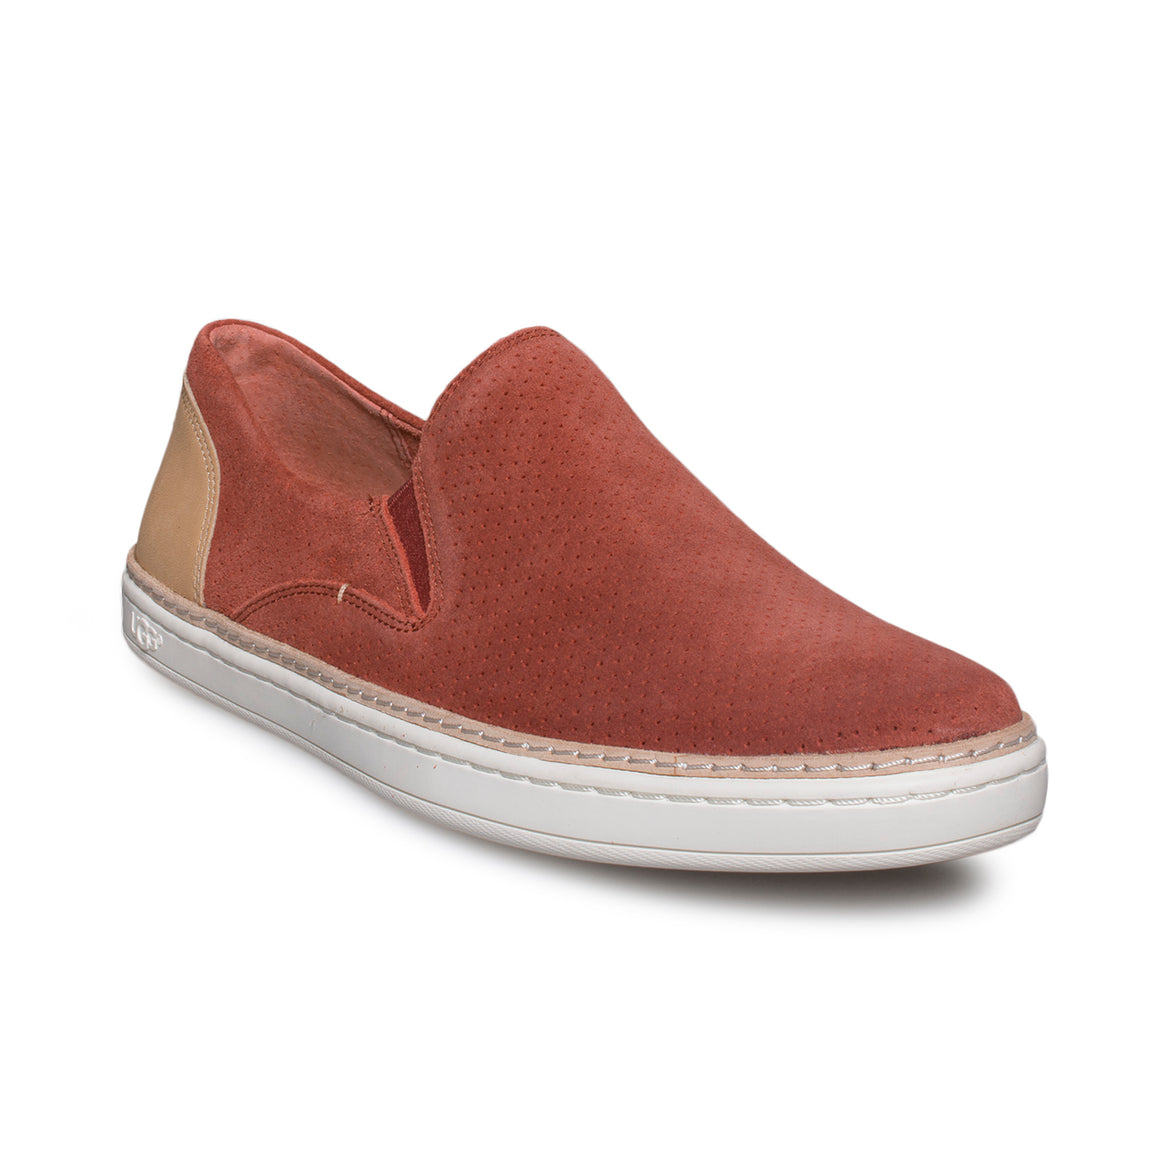 UGG Adley Perf Paprika Shoes